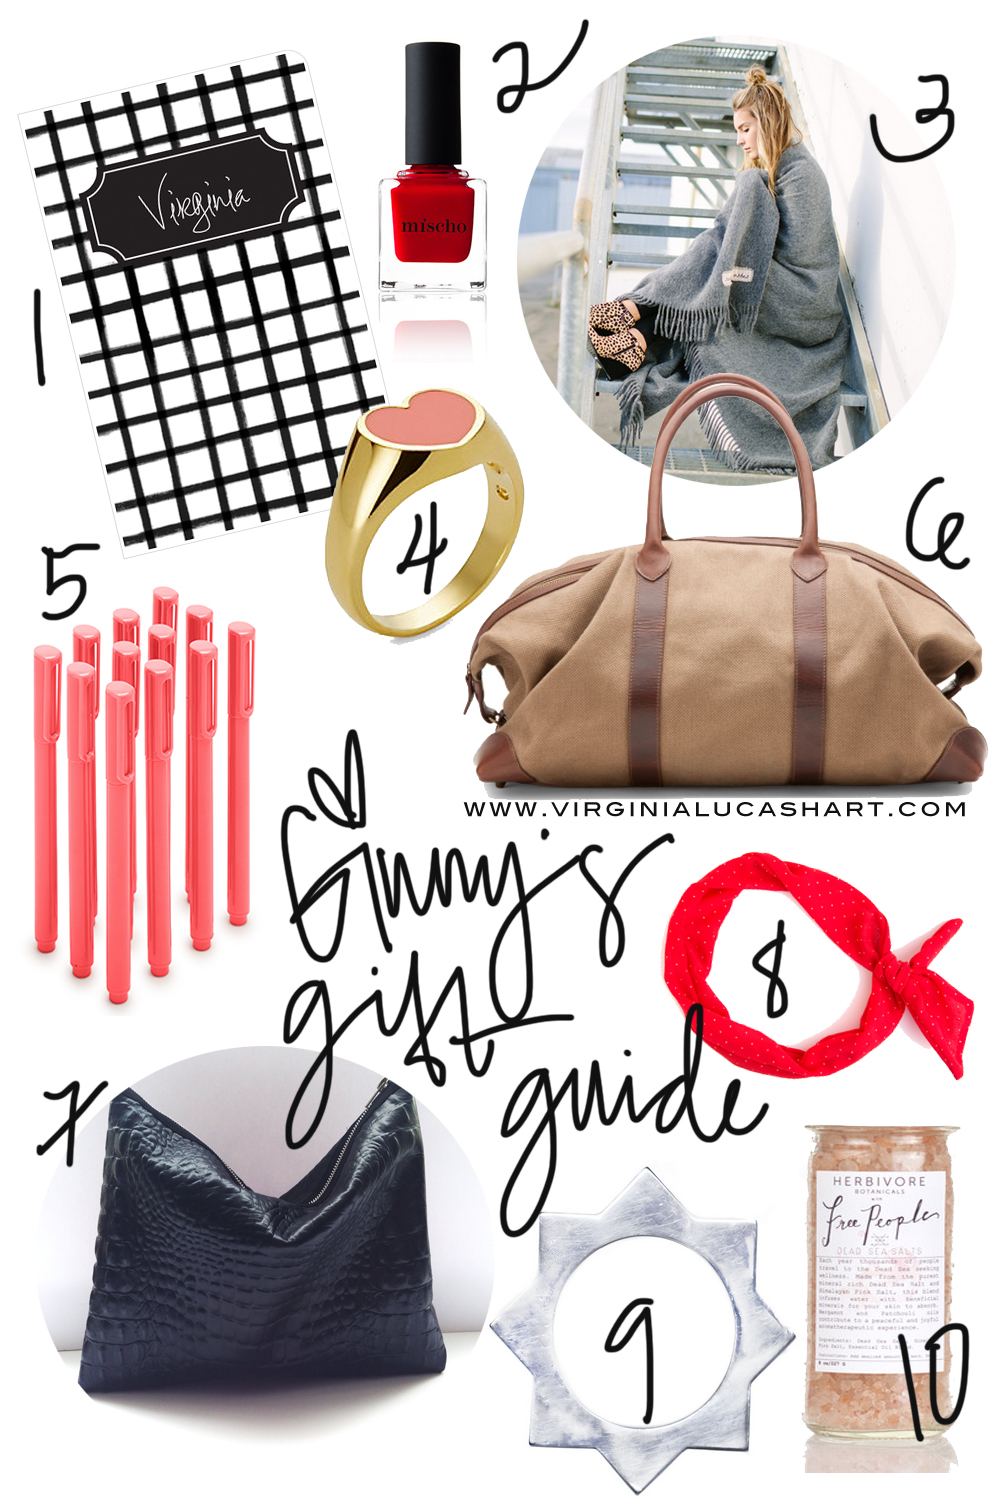 GinnysChristmas2014GiftGuide